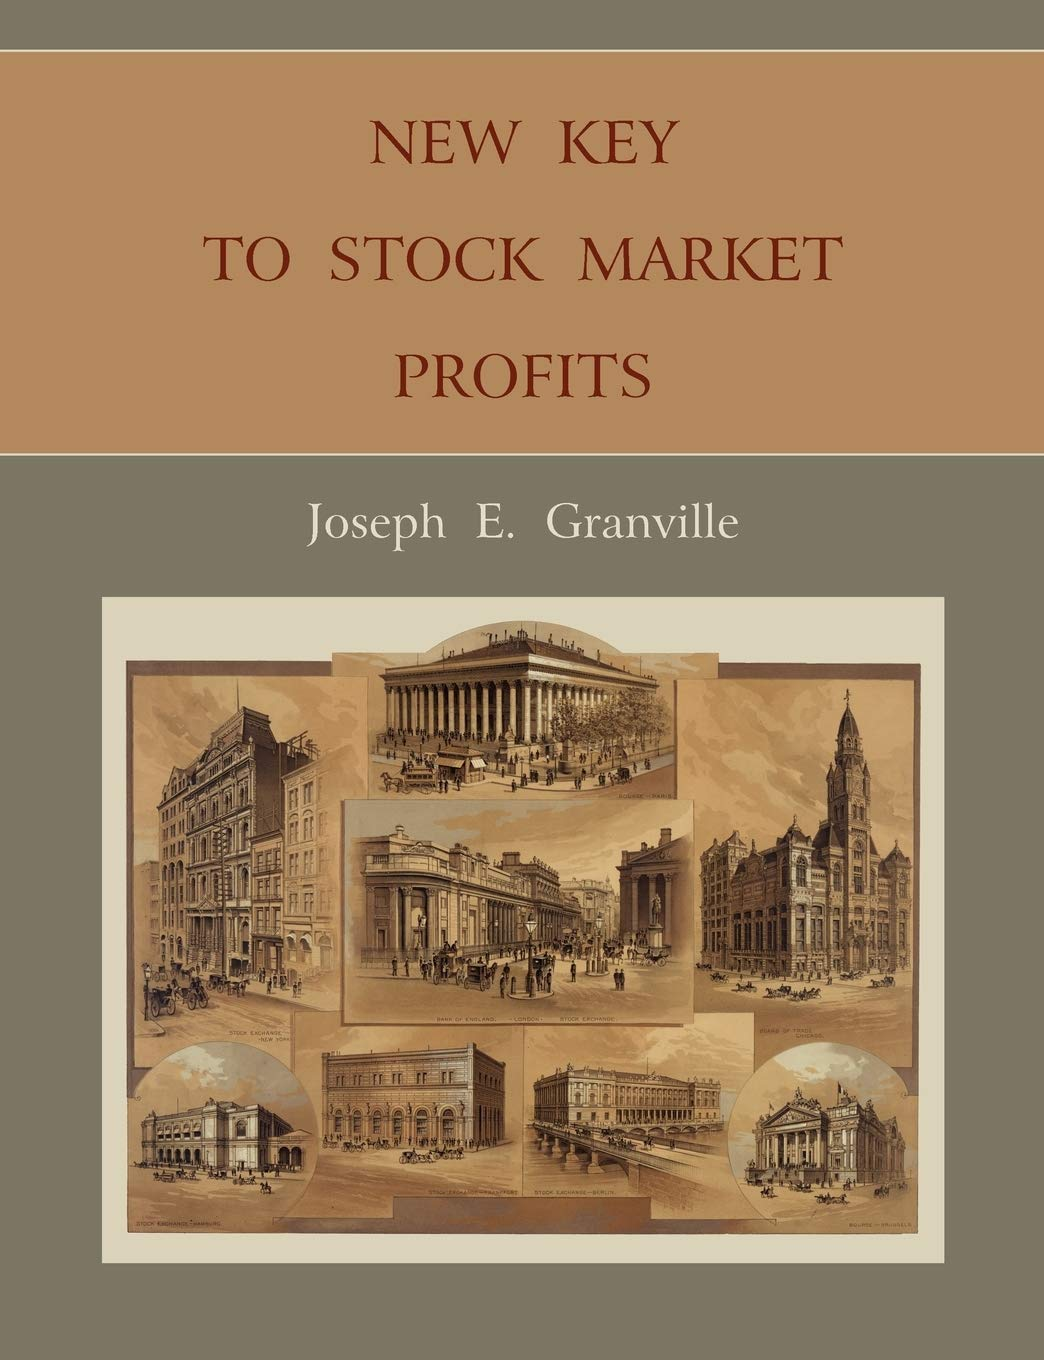 visitante domingo cheque  New Key to Stock Market Profits: Granville, Joseph E.: 9781891396373:  Amazon.com: Books